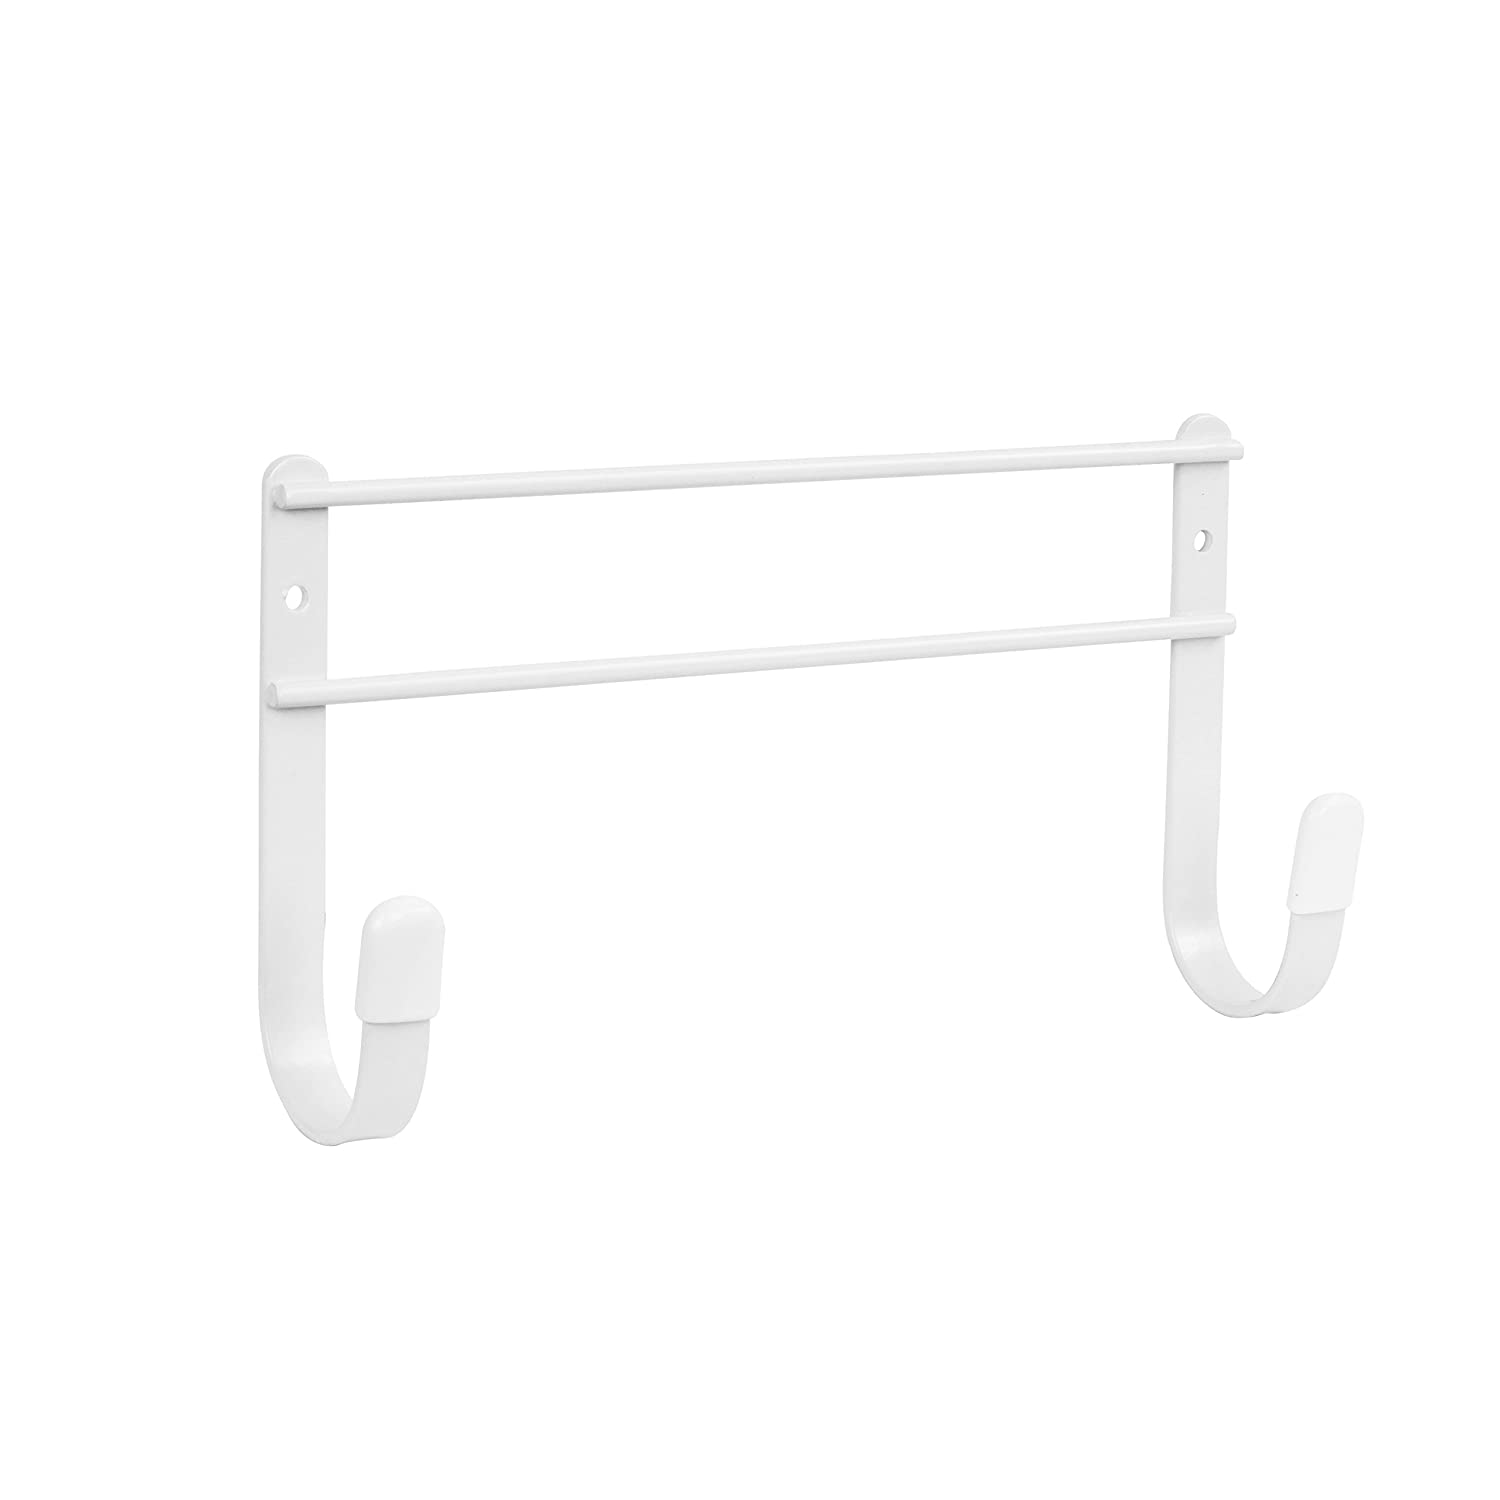 Spectrum Diversified Wall Mount Ironing Board Holder, White 66400